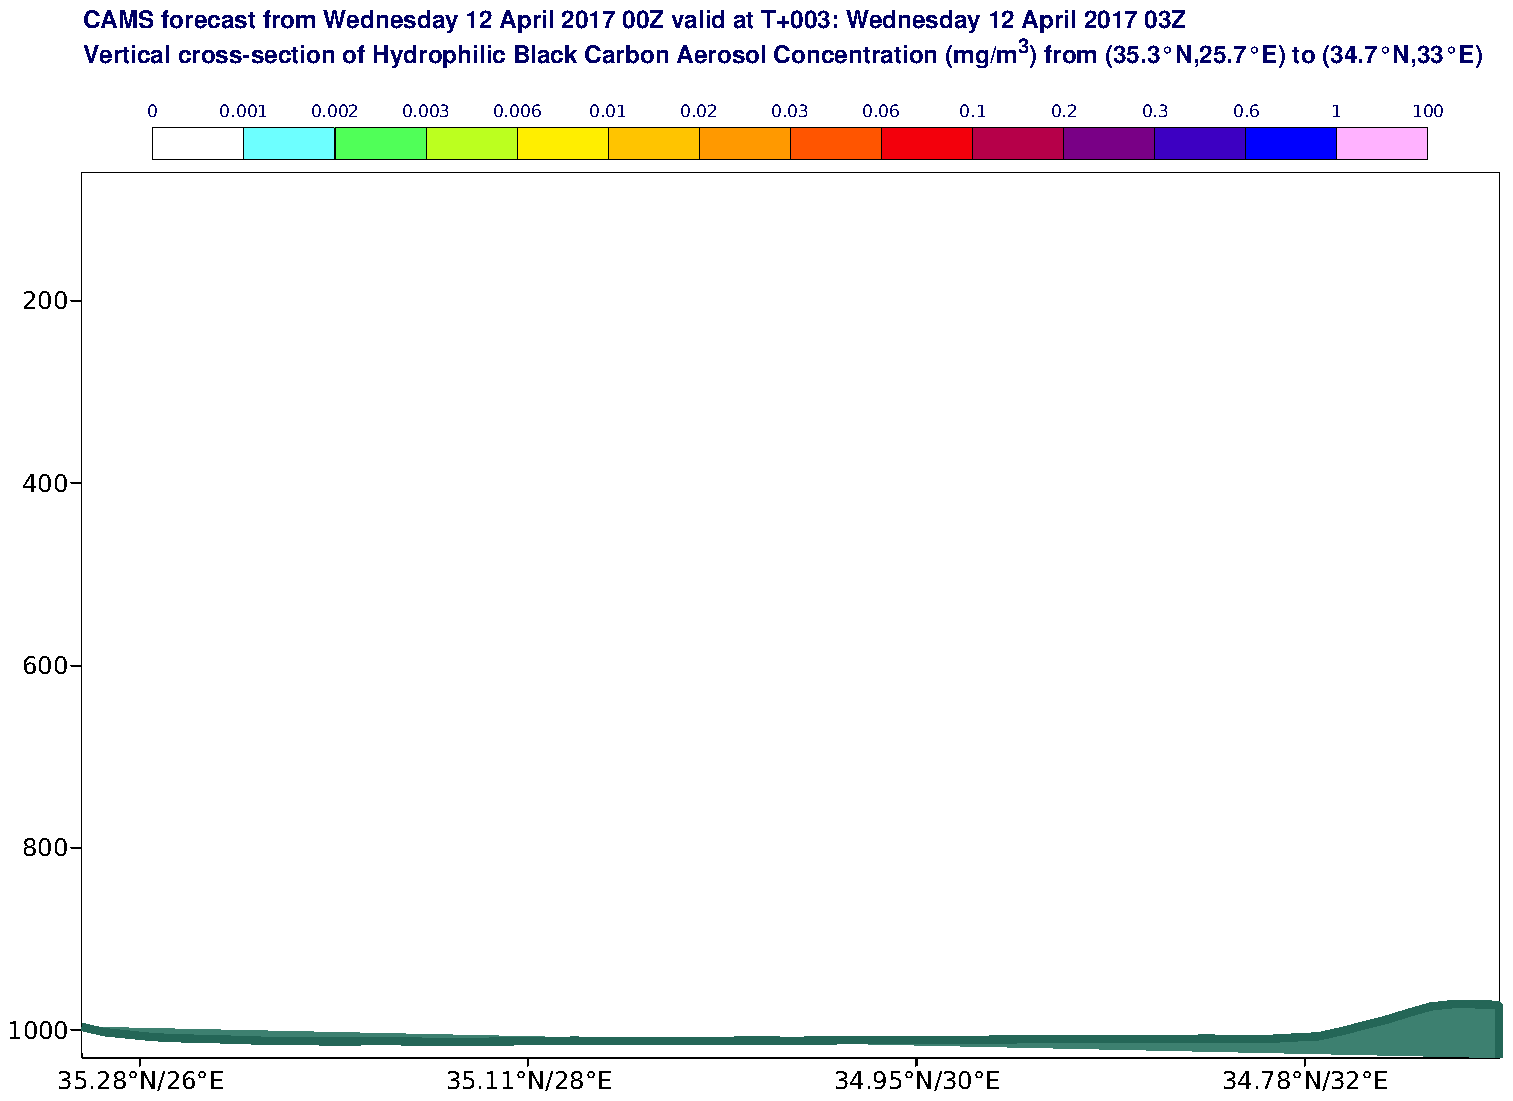 Vertical cross-section of Hydrophilic Black Carbon Aerosol Concentration (mg/m3) valid at T3 - 2017-04-12 03:00